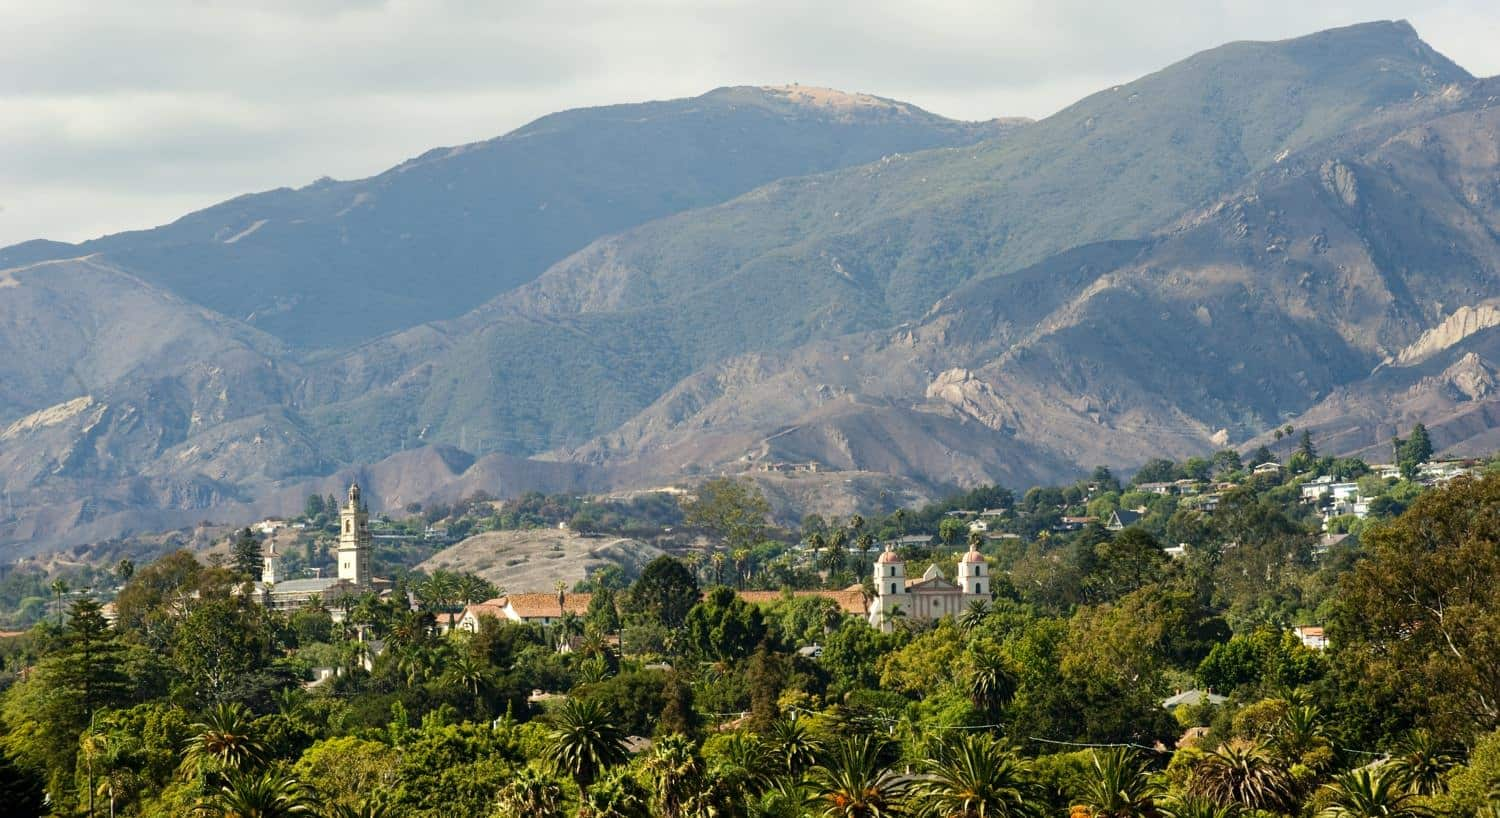 Aerial view of Santa Barbara with tops of buildings peeking through tree tops and mountains in background